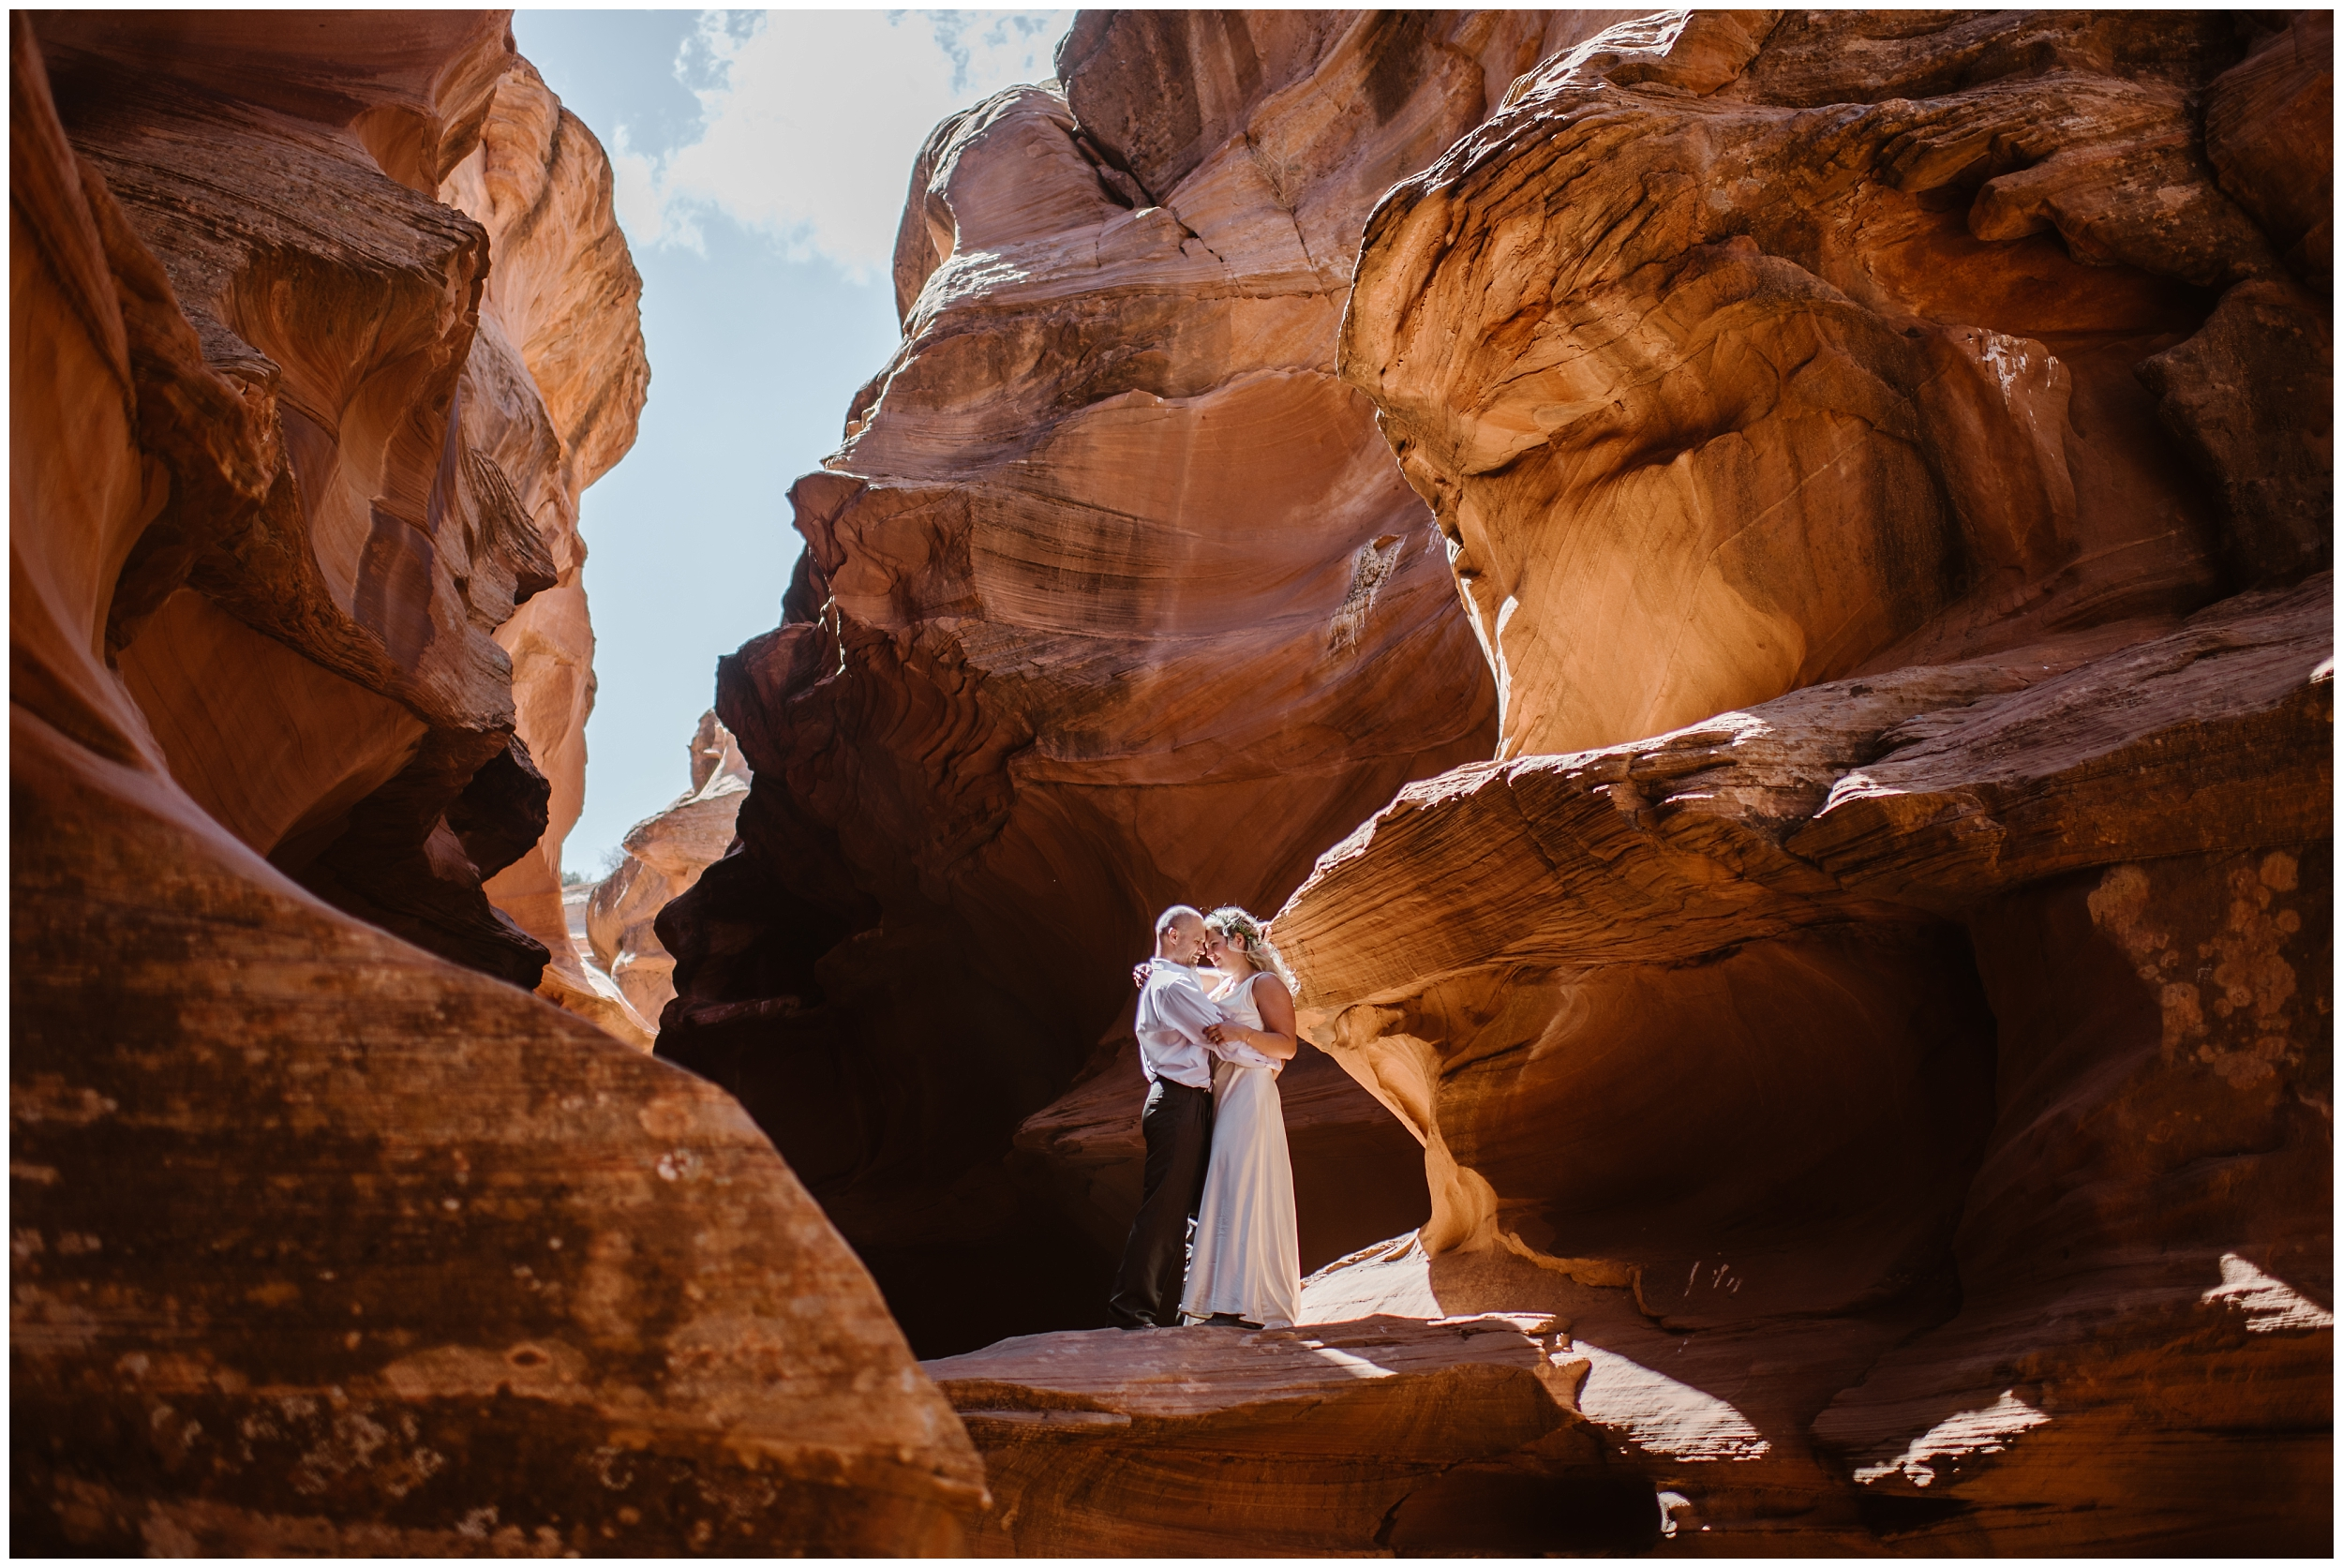 A couple holds each other close in a slot canyon in the Arizona wilderness. These adventure elopement photos were captured by Adventure Instead, an elopement photographer.